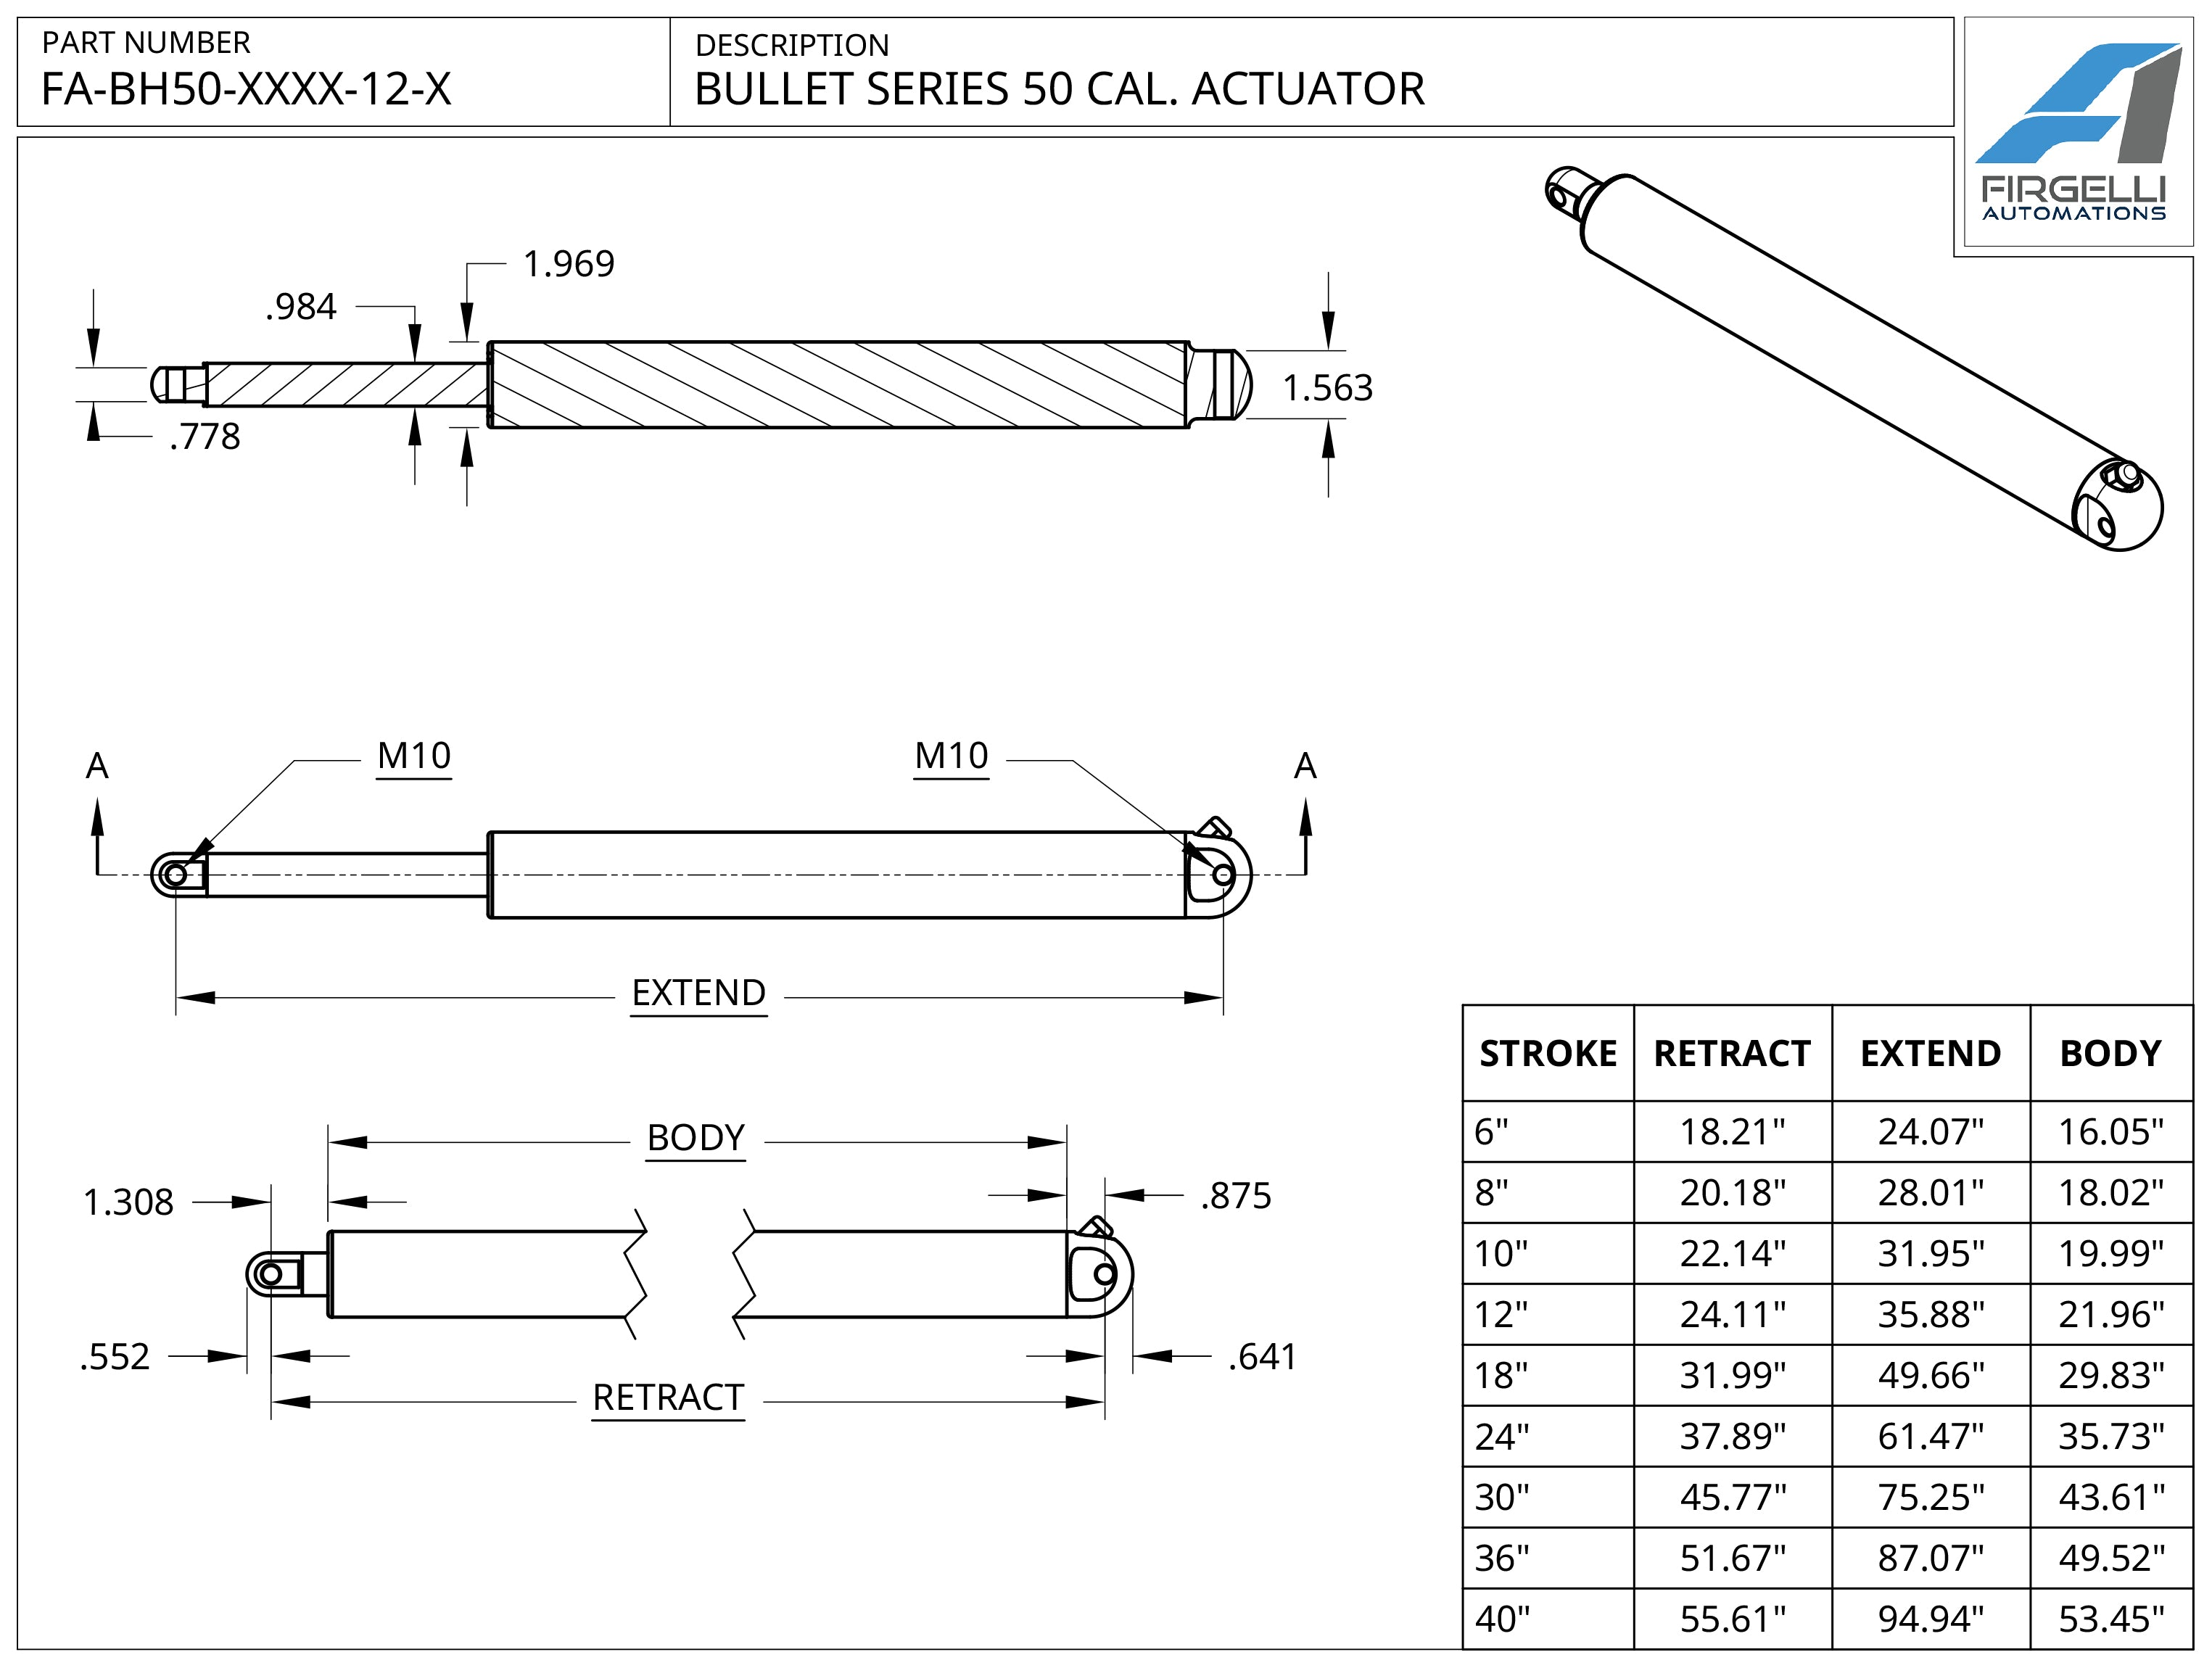 Bullet 50 Cal. Technical Drawing